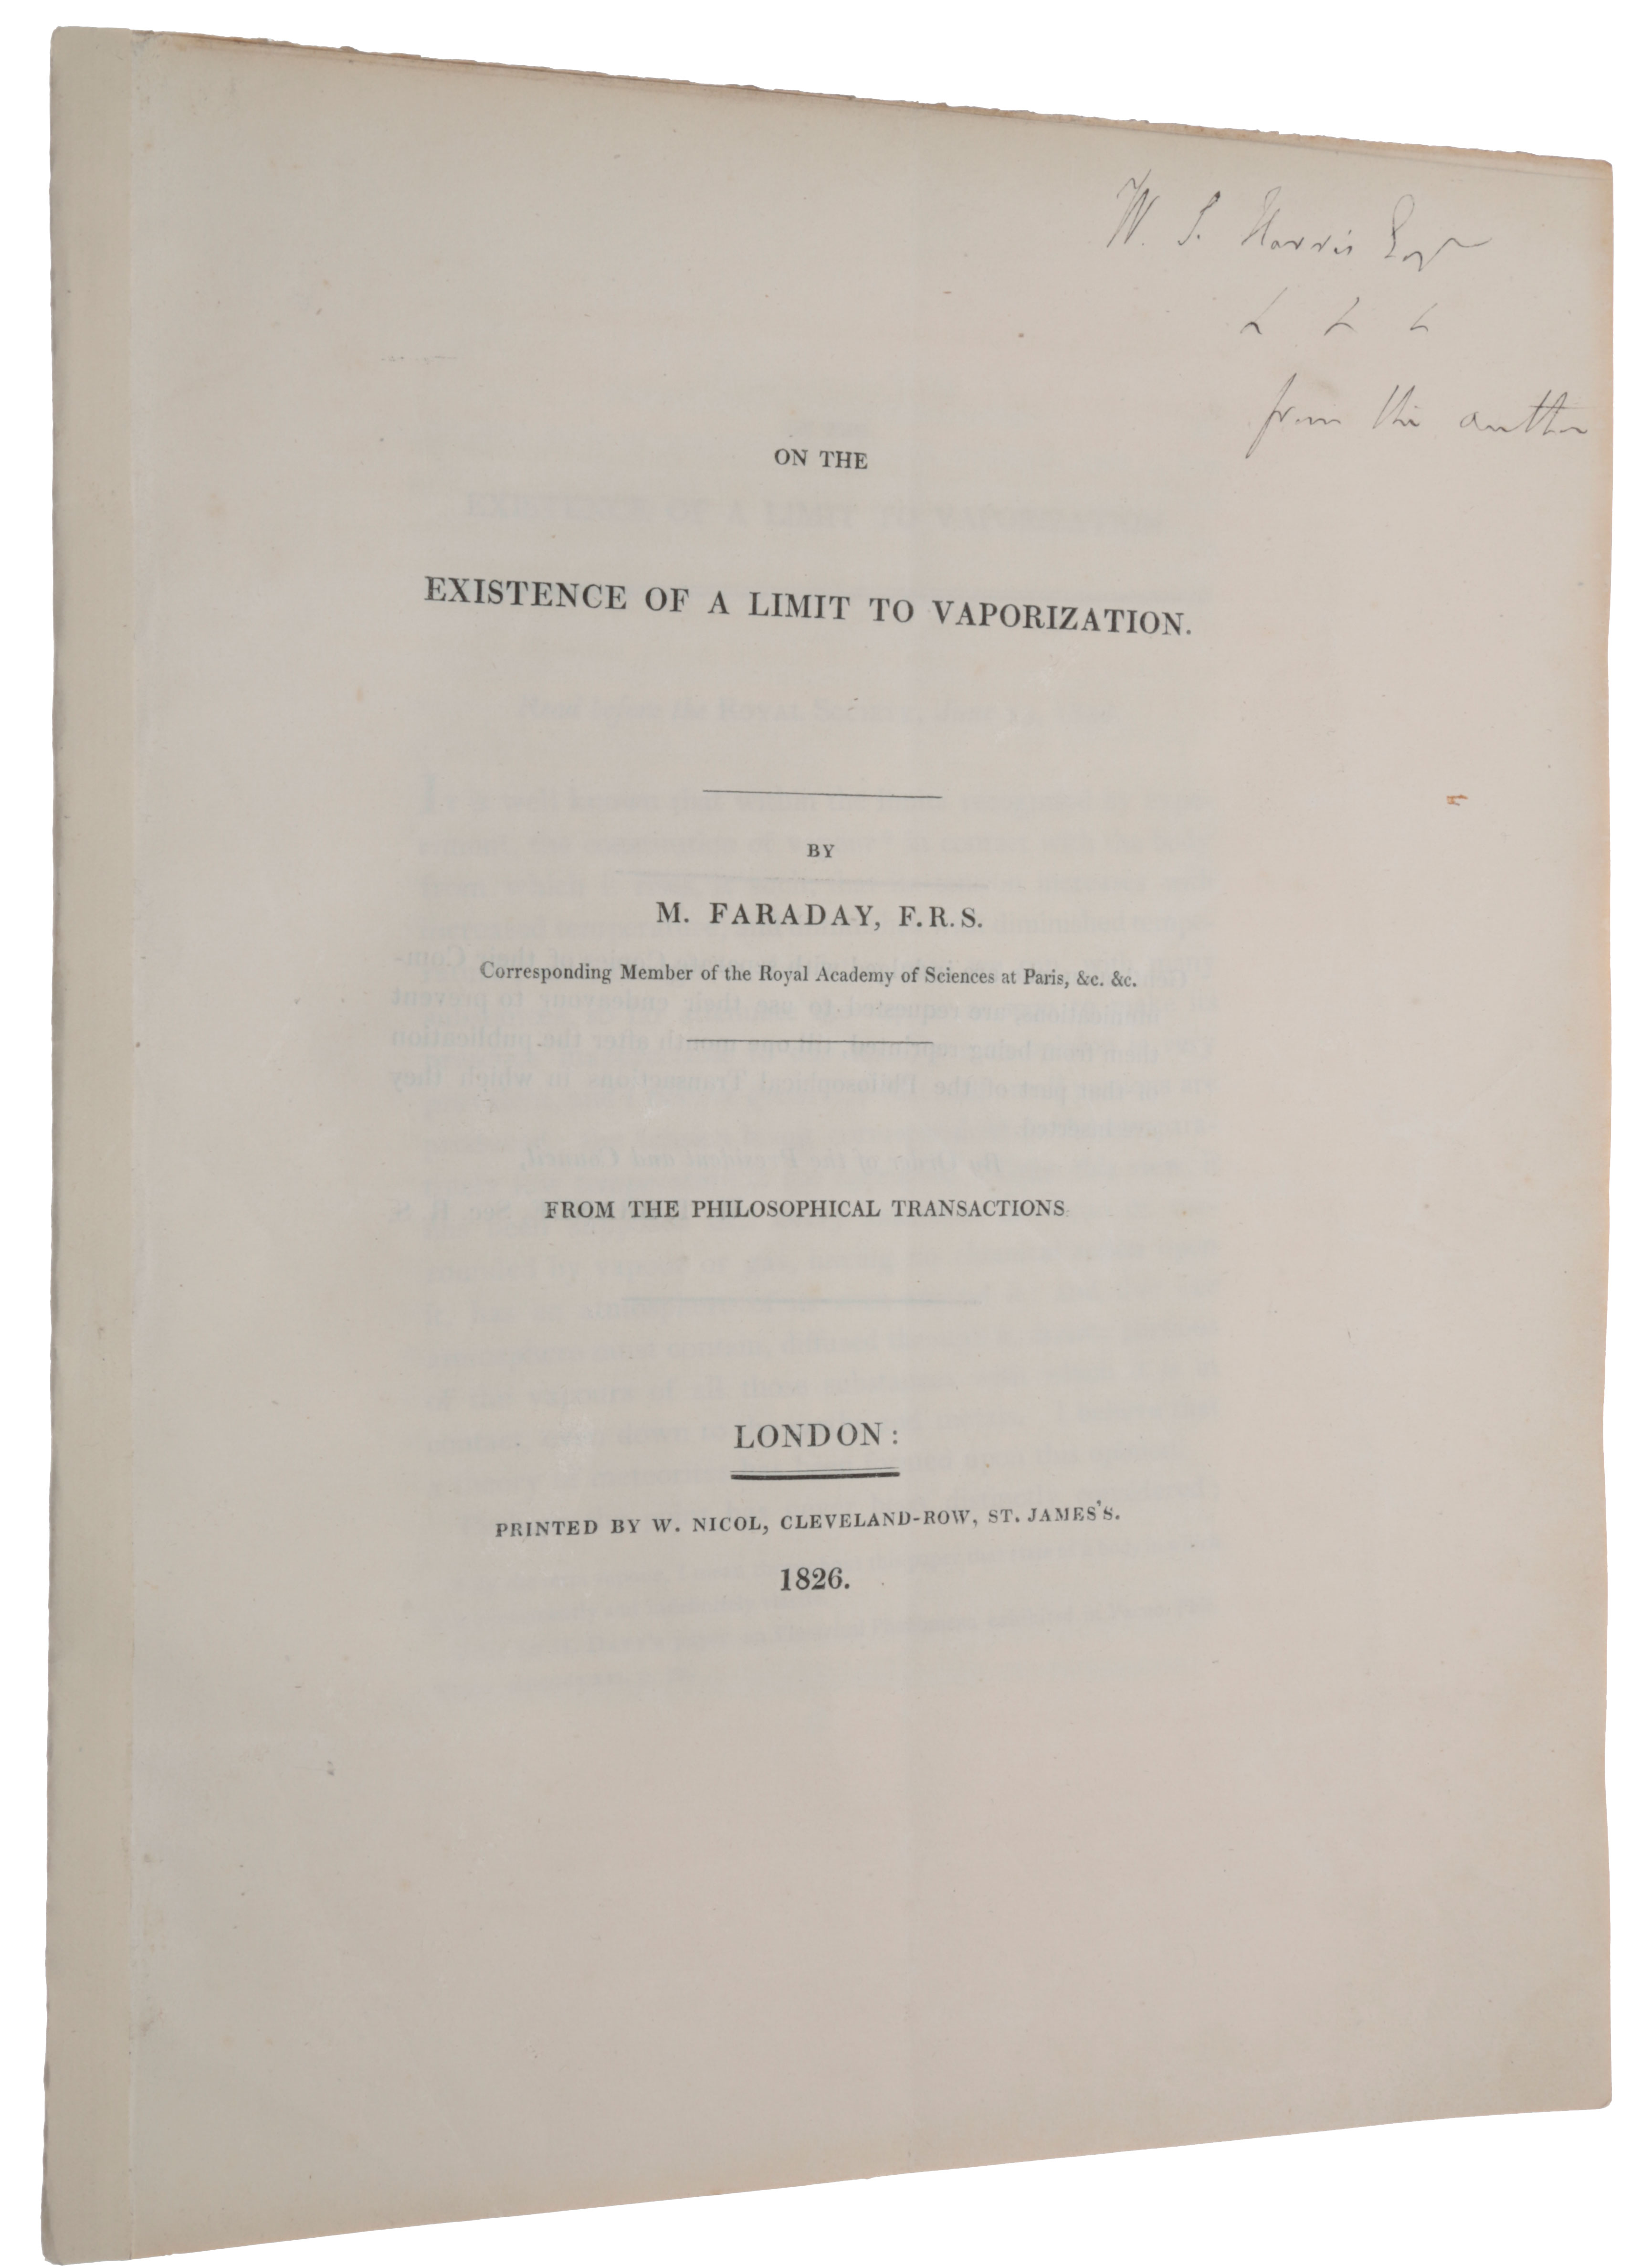 On the existence of a limit to varporization. Offprint from: Philosophical Transactions, Vol. 116. Read before the Royal Society, June 15, 1826. Michael FARADAY.